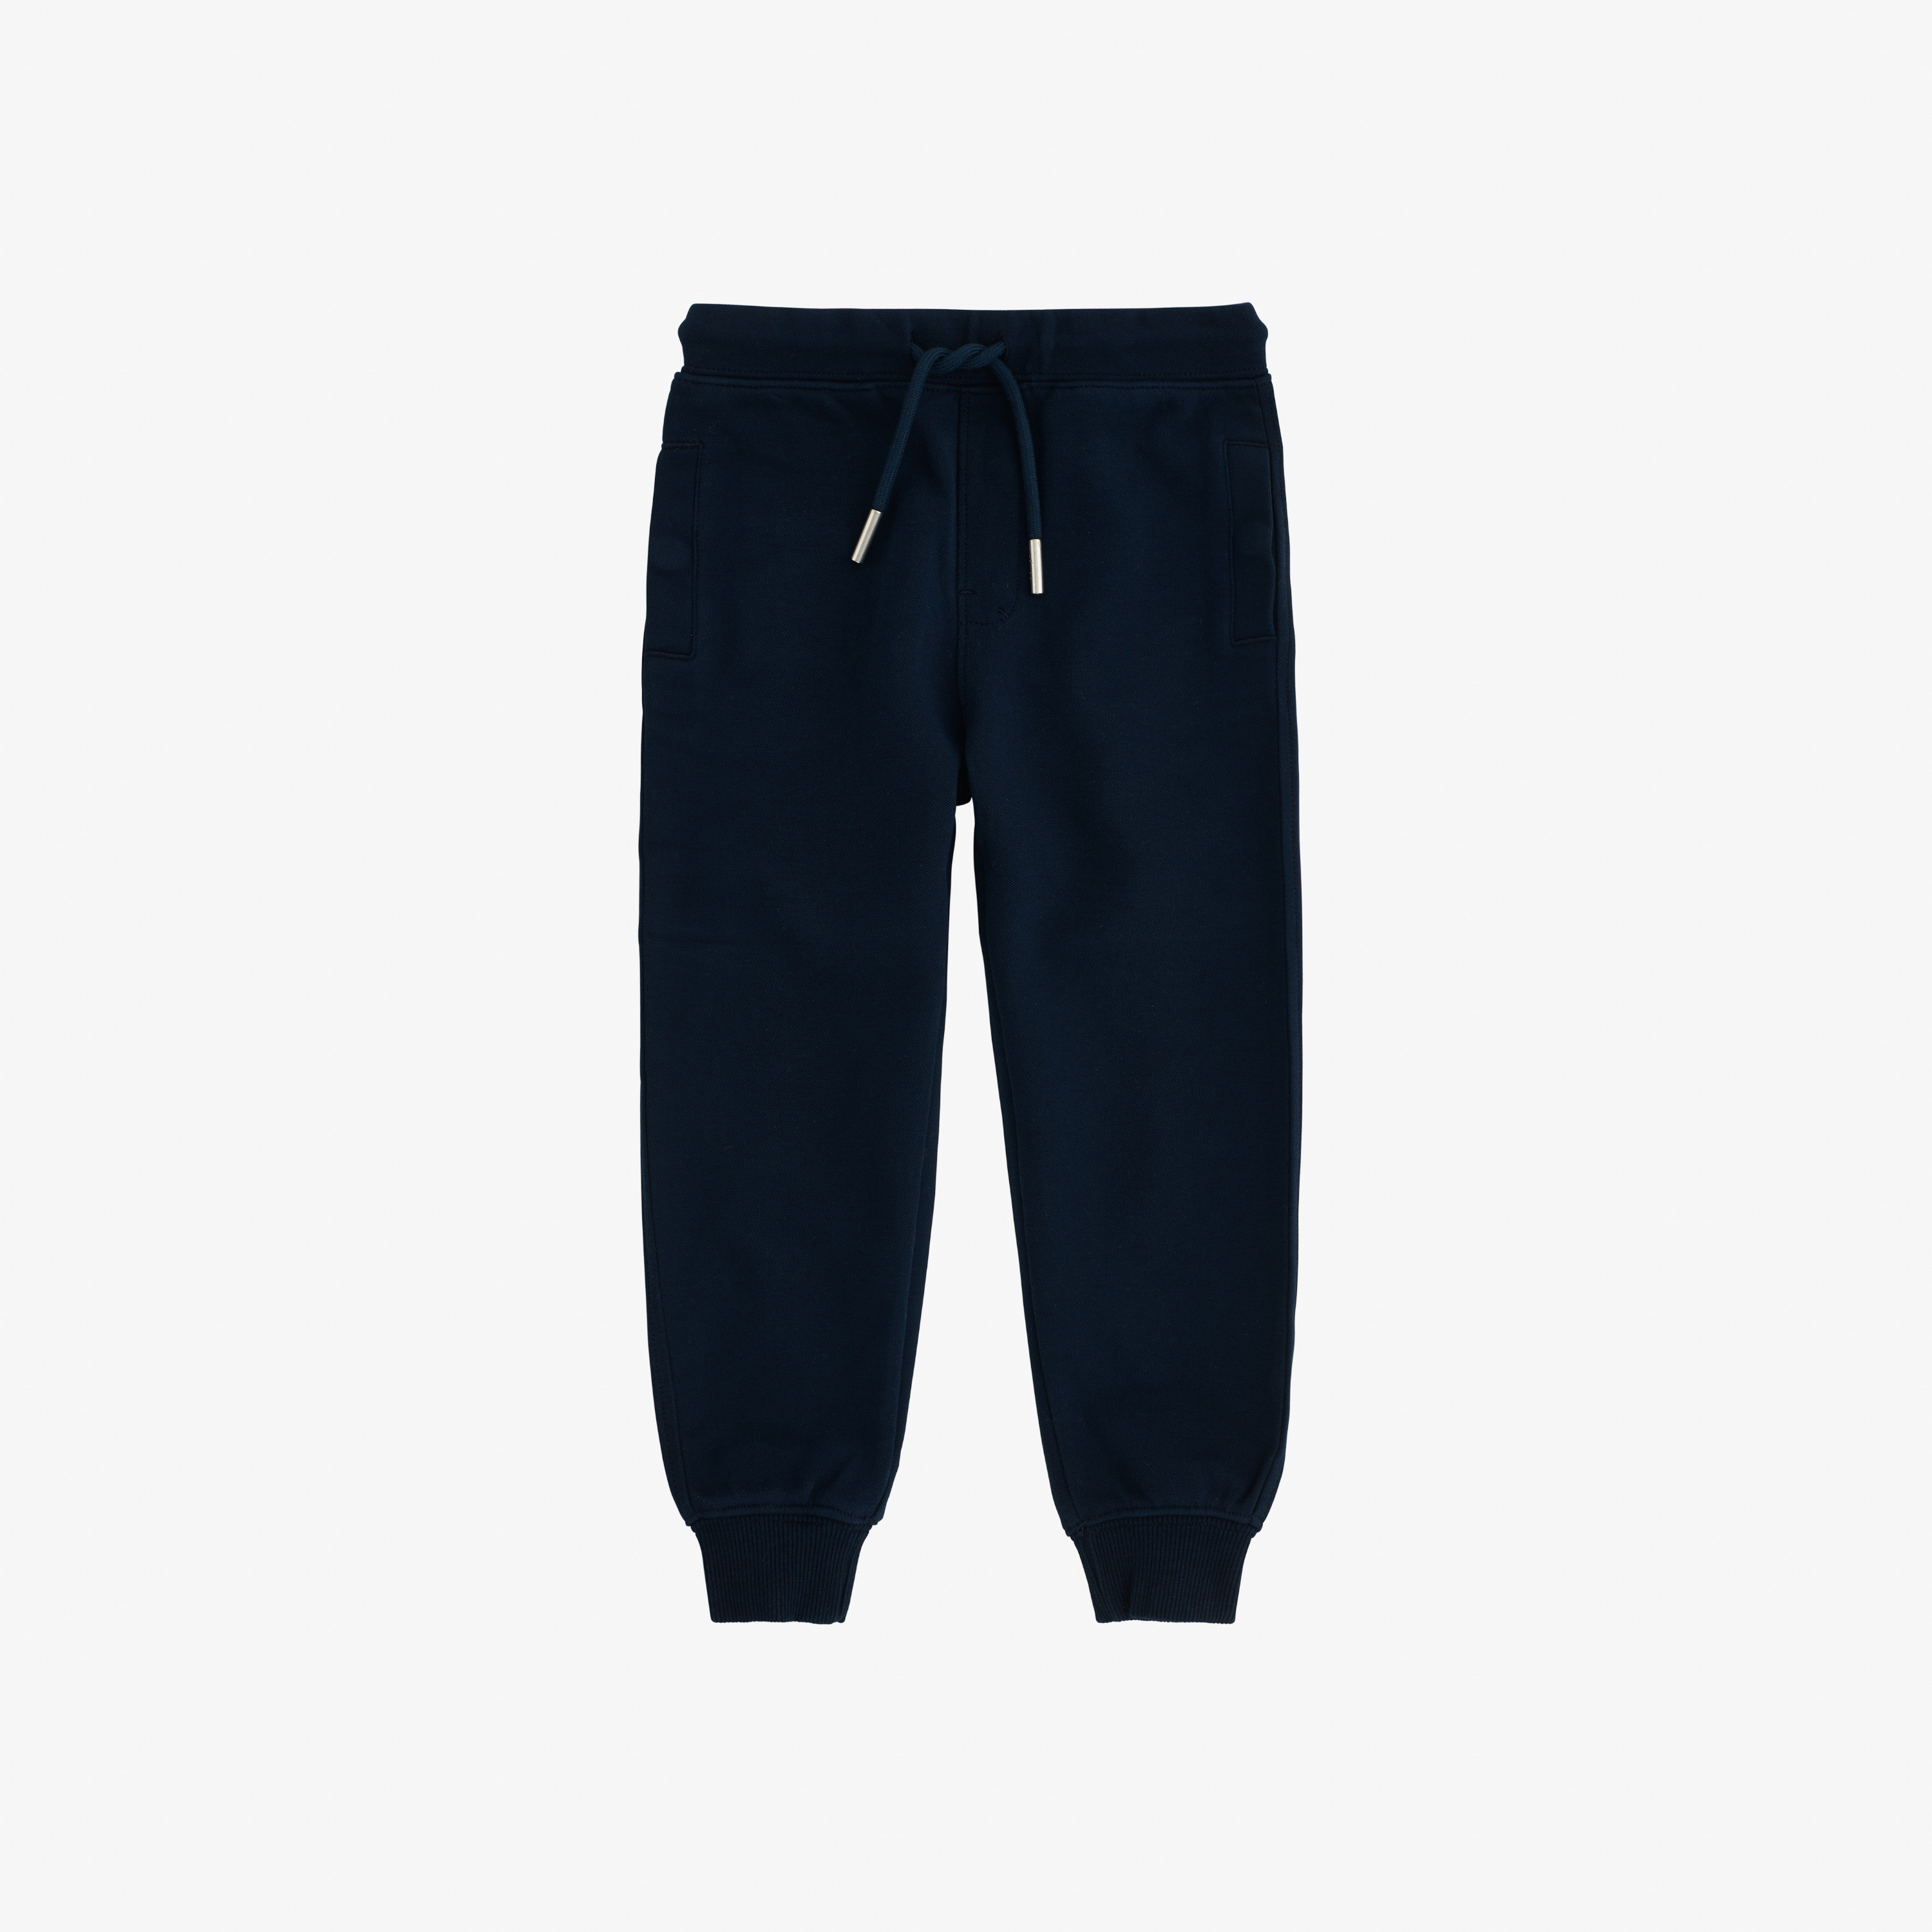 BOY'S PANT LONG HERITAGE COTT.FL NAVY BLUE